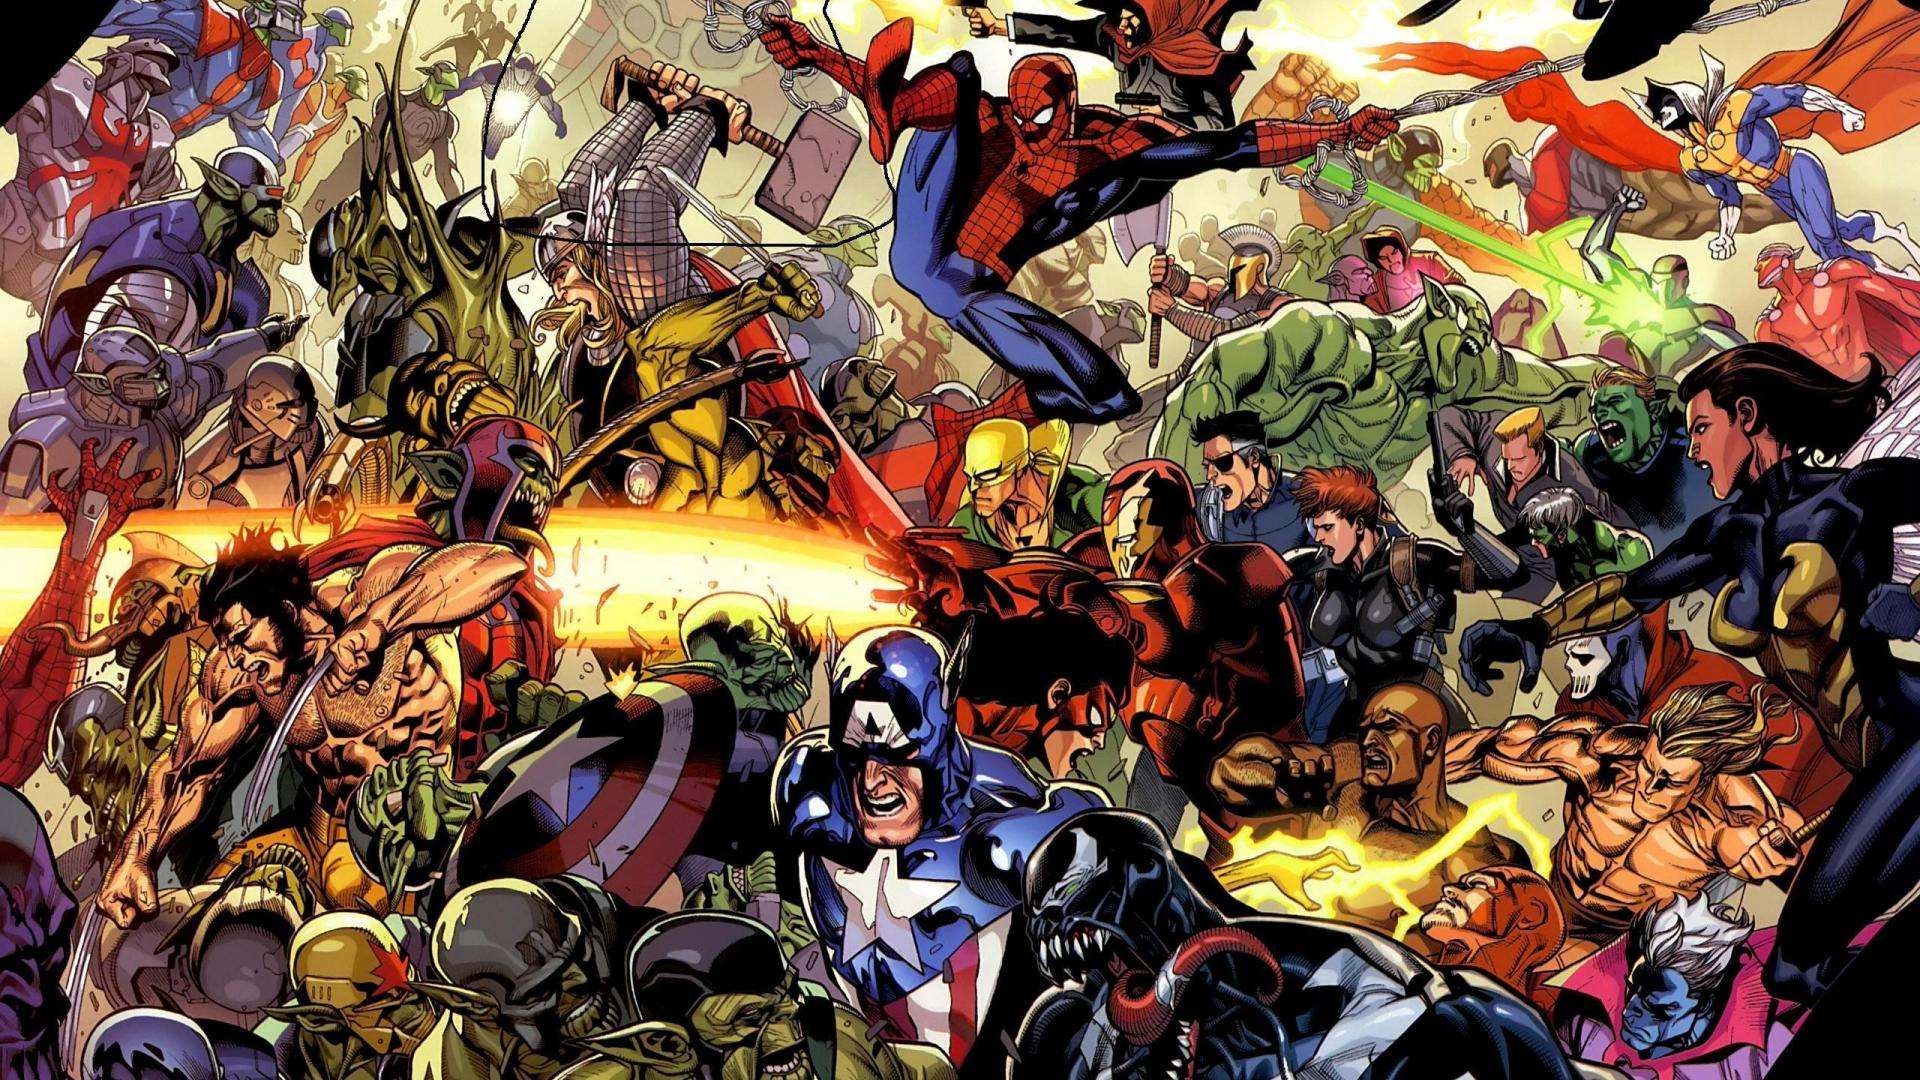 2016 Marvel HDQ Wallpapers, 100% Quality HD Backgrounds #96XAZ